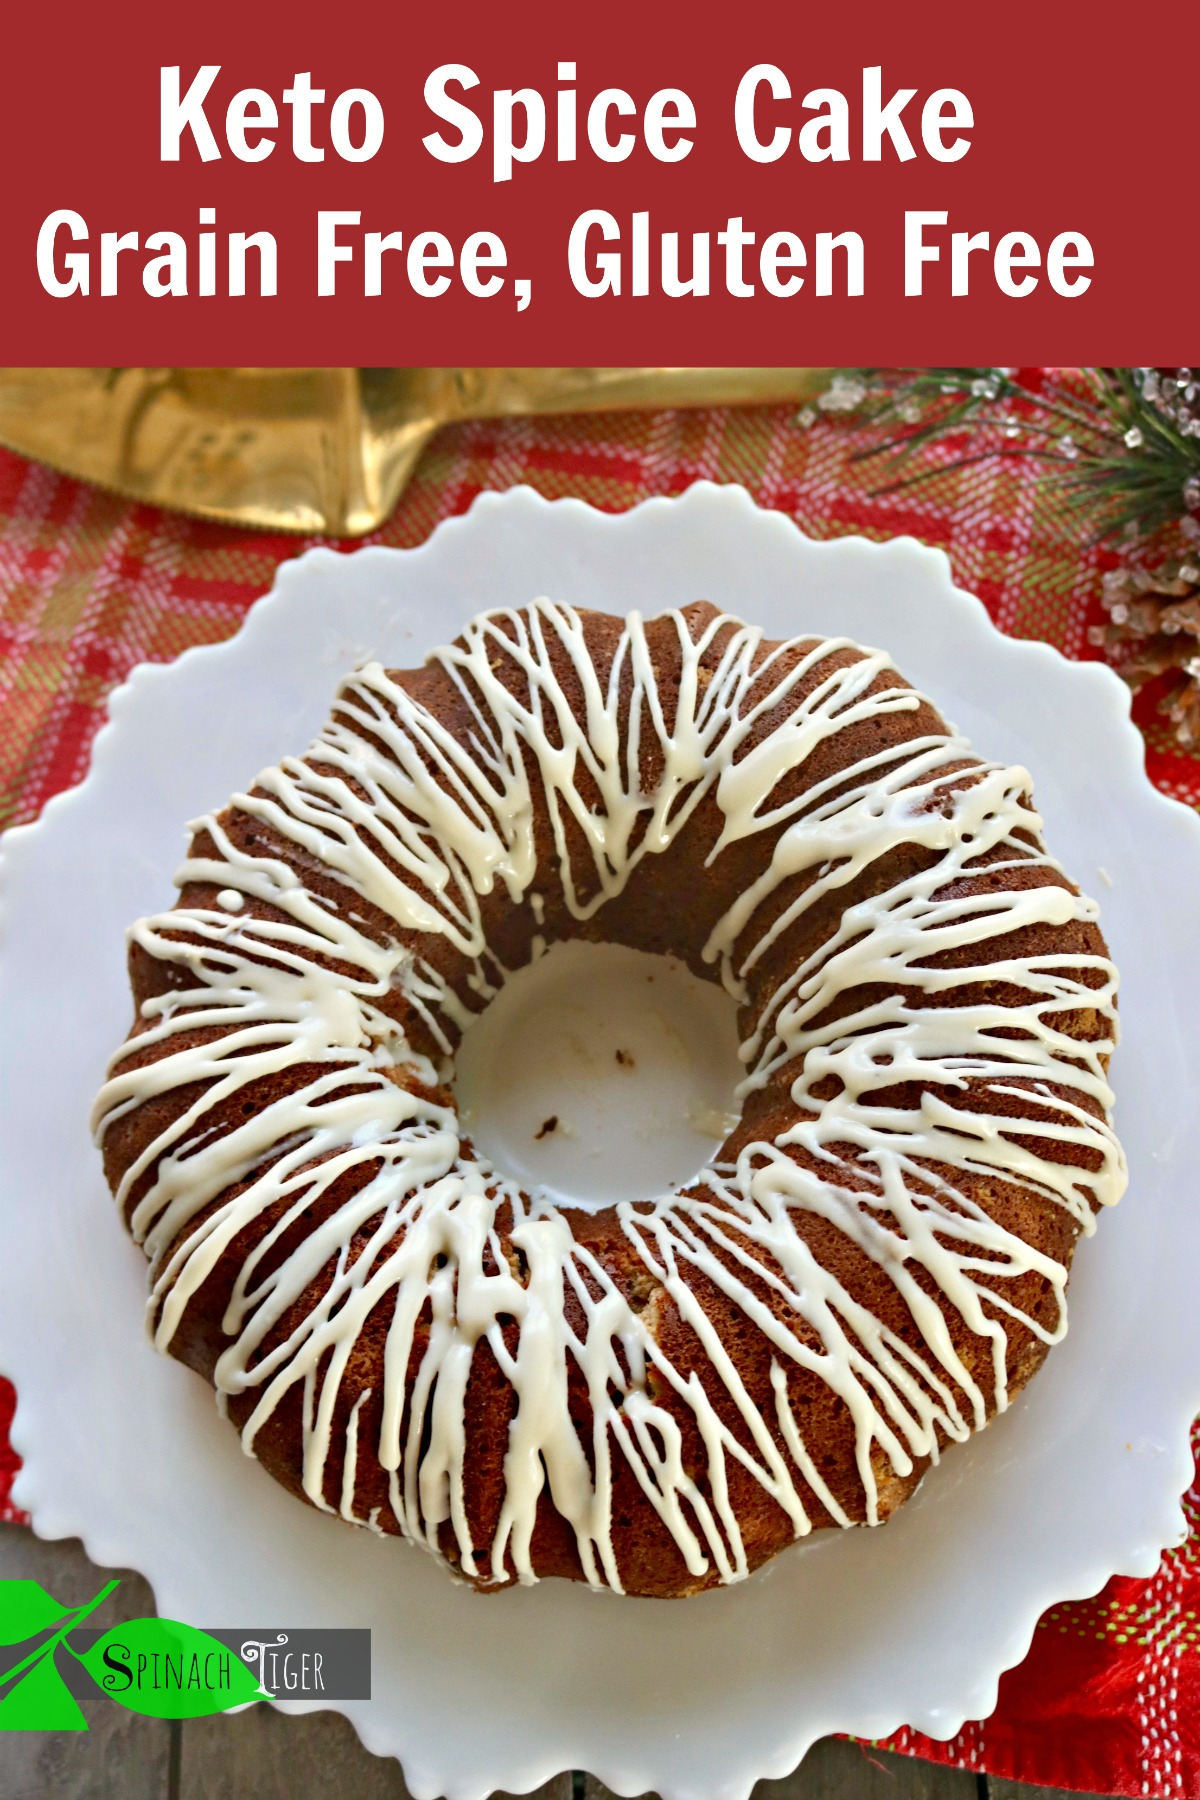 Keto Spice Cake with Cream Cheese Glaze from Spinach TIger